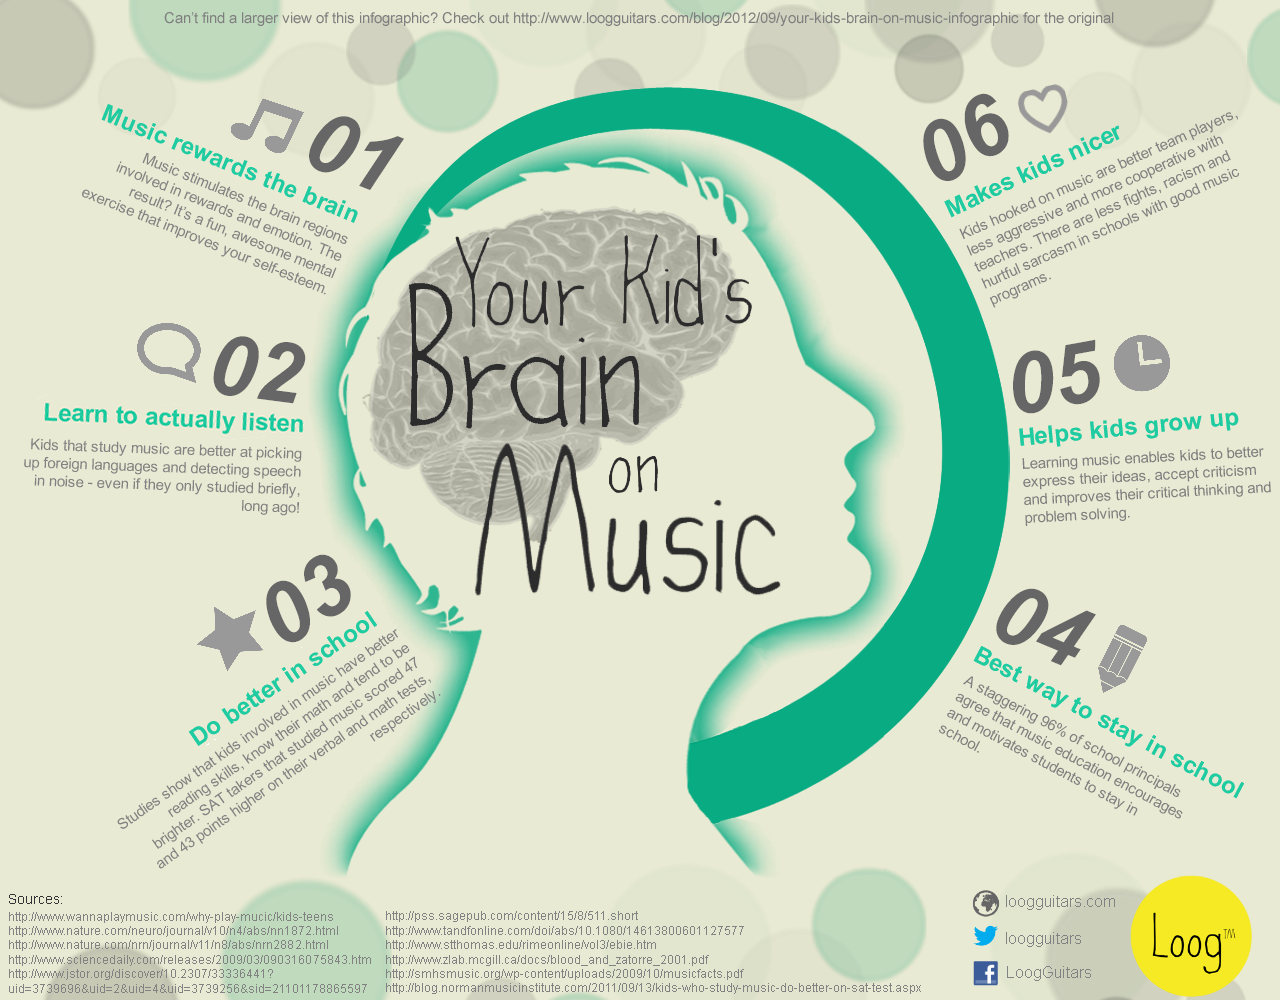 music and brain function While music tends to be processed mostly in the right hemisphere of the brain, no single set of cells is devoted to the task different networks of neurons are activated, depending on whether a person is listening to music or playing an instrument, and whether or not the music involves lyrics.